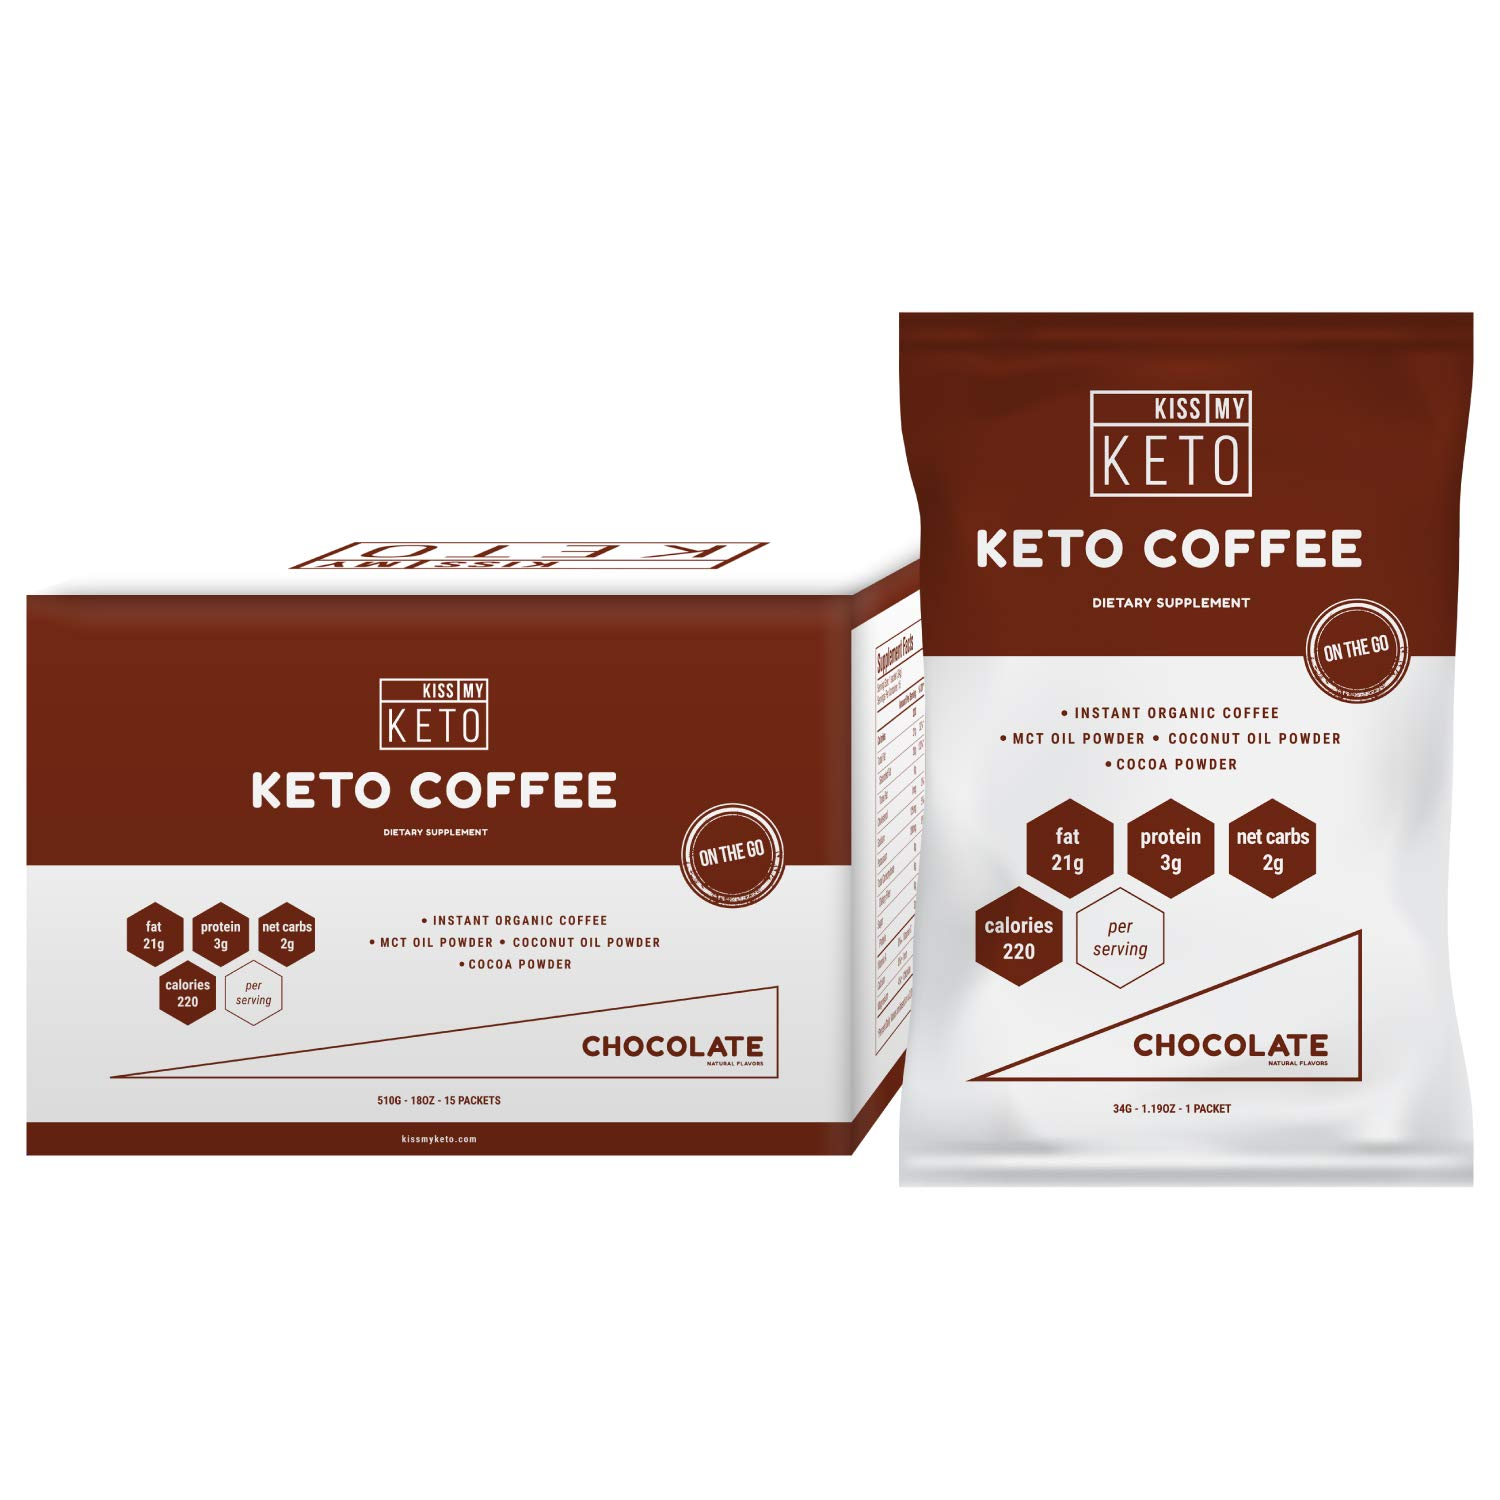 Kiss My Keto Chocolate Instant Coffee - Keto Coffee, Ketogenic Fat Coffee w Coconut Oil MCT Creamer for Ketosis and Ketone Diet. Low Carb, No Ghee Butter, Sugar Free Cafe Chocolate Coffee, 15 Servings